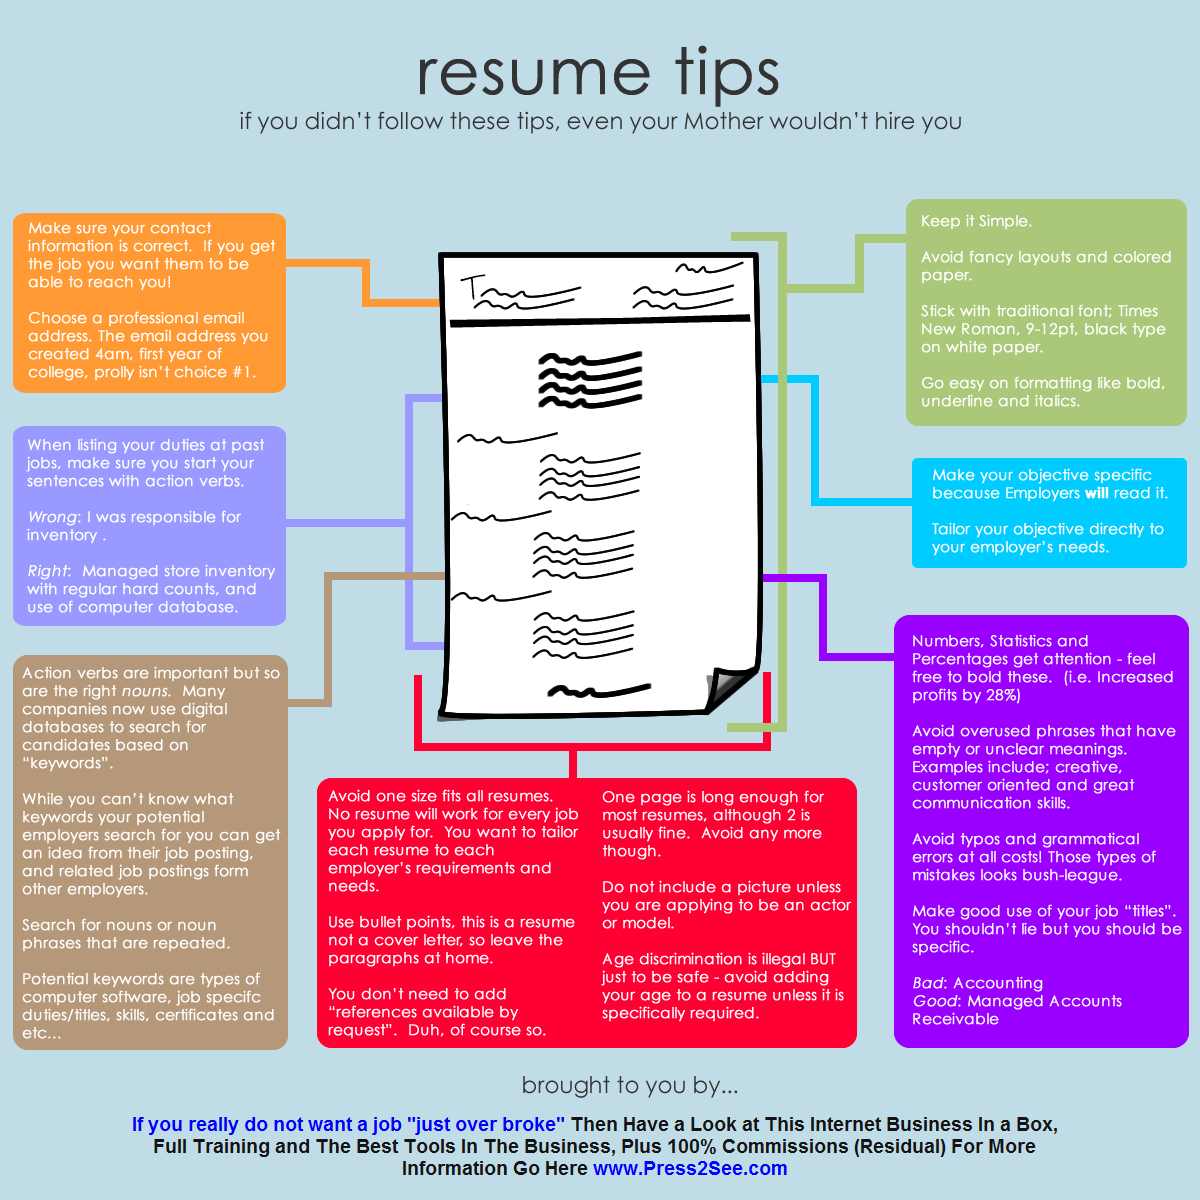 Never Mind Doing A New Resume Who Wants A Job Anyway, Nobody ever ...